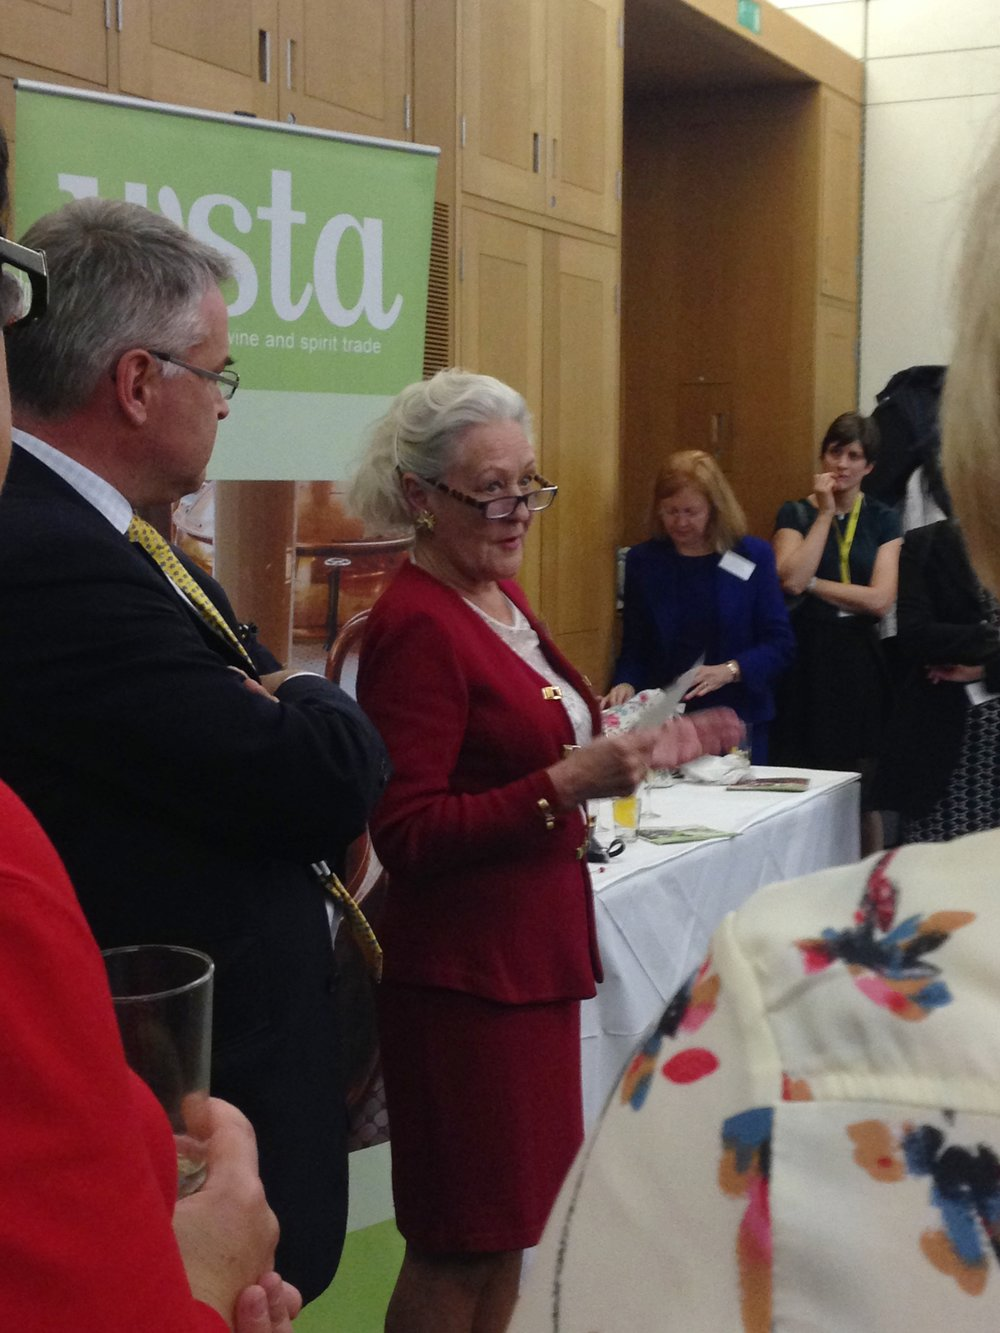 Sarah Morphew Stephen MW, the first female Master of Wine, giving a speech at the WSTA Parliamentary event. The crowd hung on to every word.